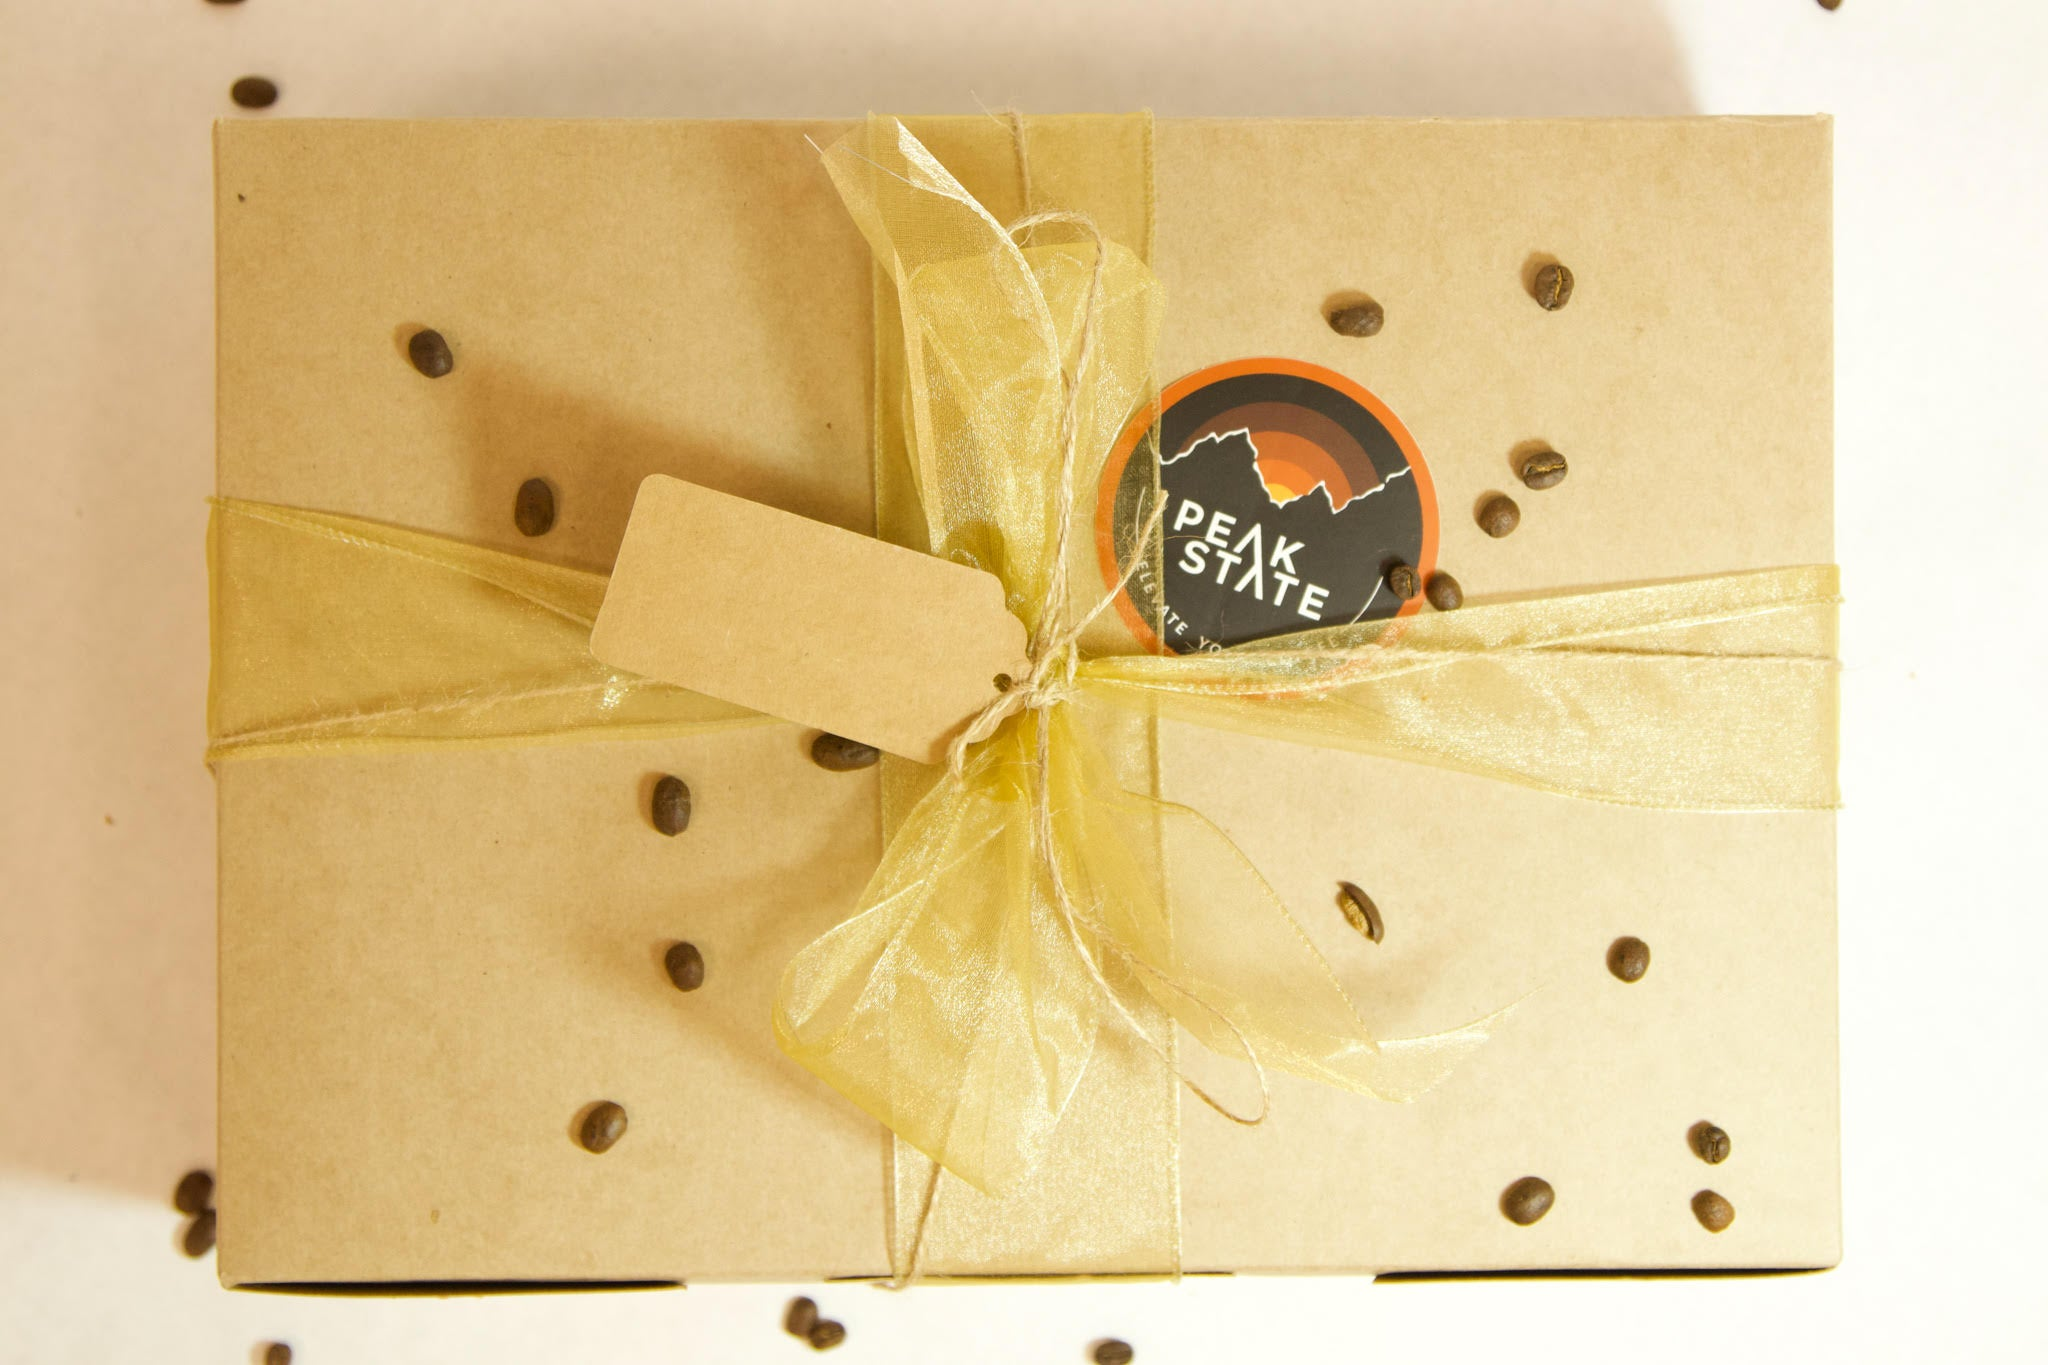 Peak State Trio Gift Box